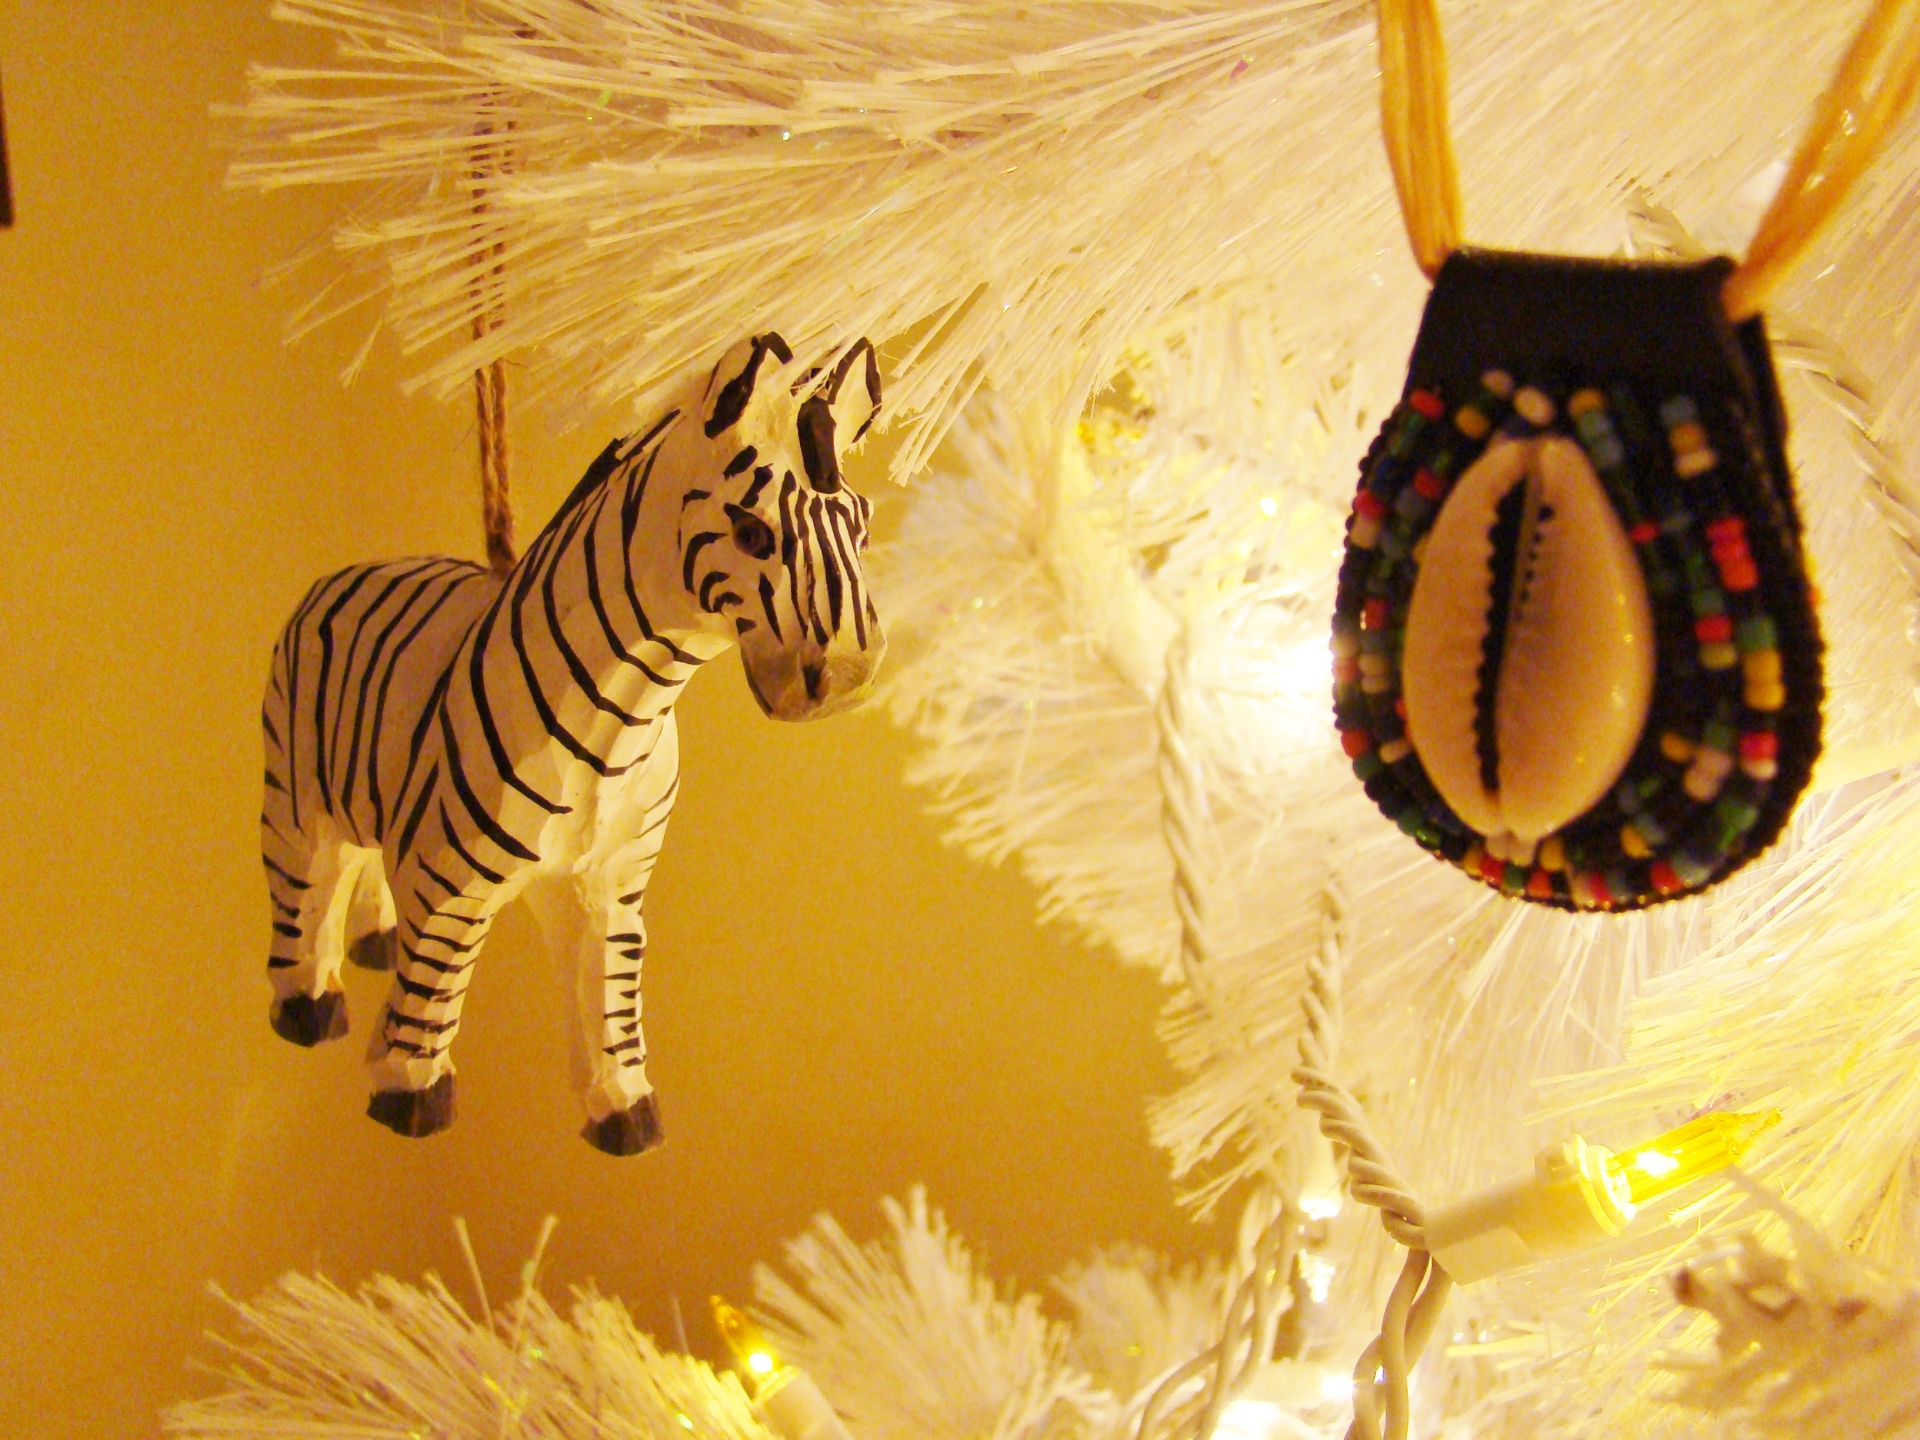 Fiorito Interior Design, interior design, Homes For The Holidays, African, holiday tree, carved wooden zebra ornament, cowrie shell ornament